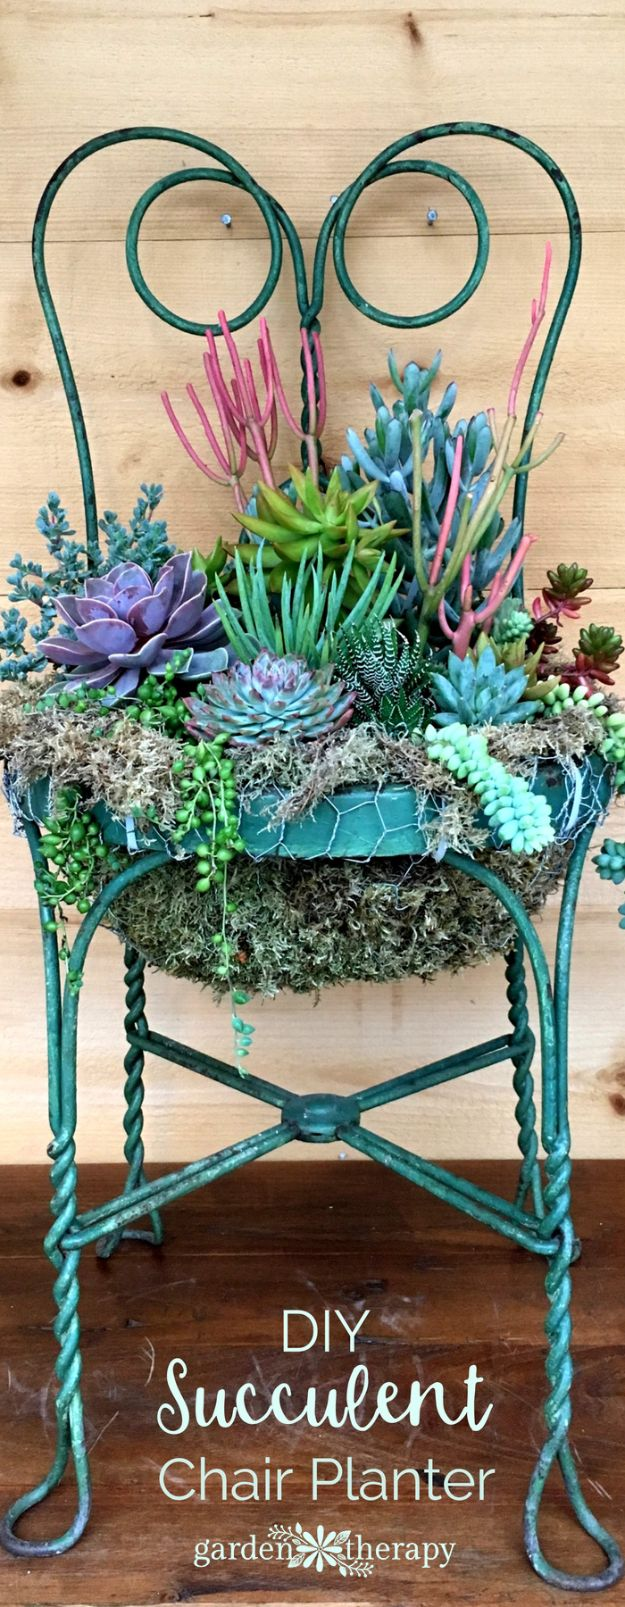 Container Gardening Ideas - Succulent Chair Planter - Easy Garden Projects for Containers and Growing Plants in Small Spaces - DIY Potting Tips and Planter Boxes for Vegetables, Herbs and Flowers - Simple Ideas for Beginners -Shade, Full Sun, Pation and Yard Landscape Idea tutorials